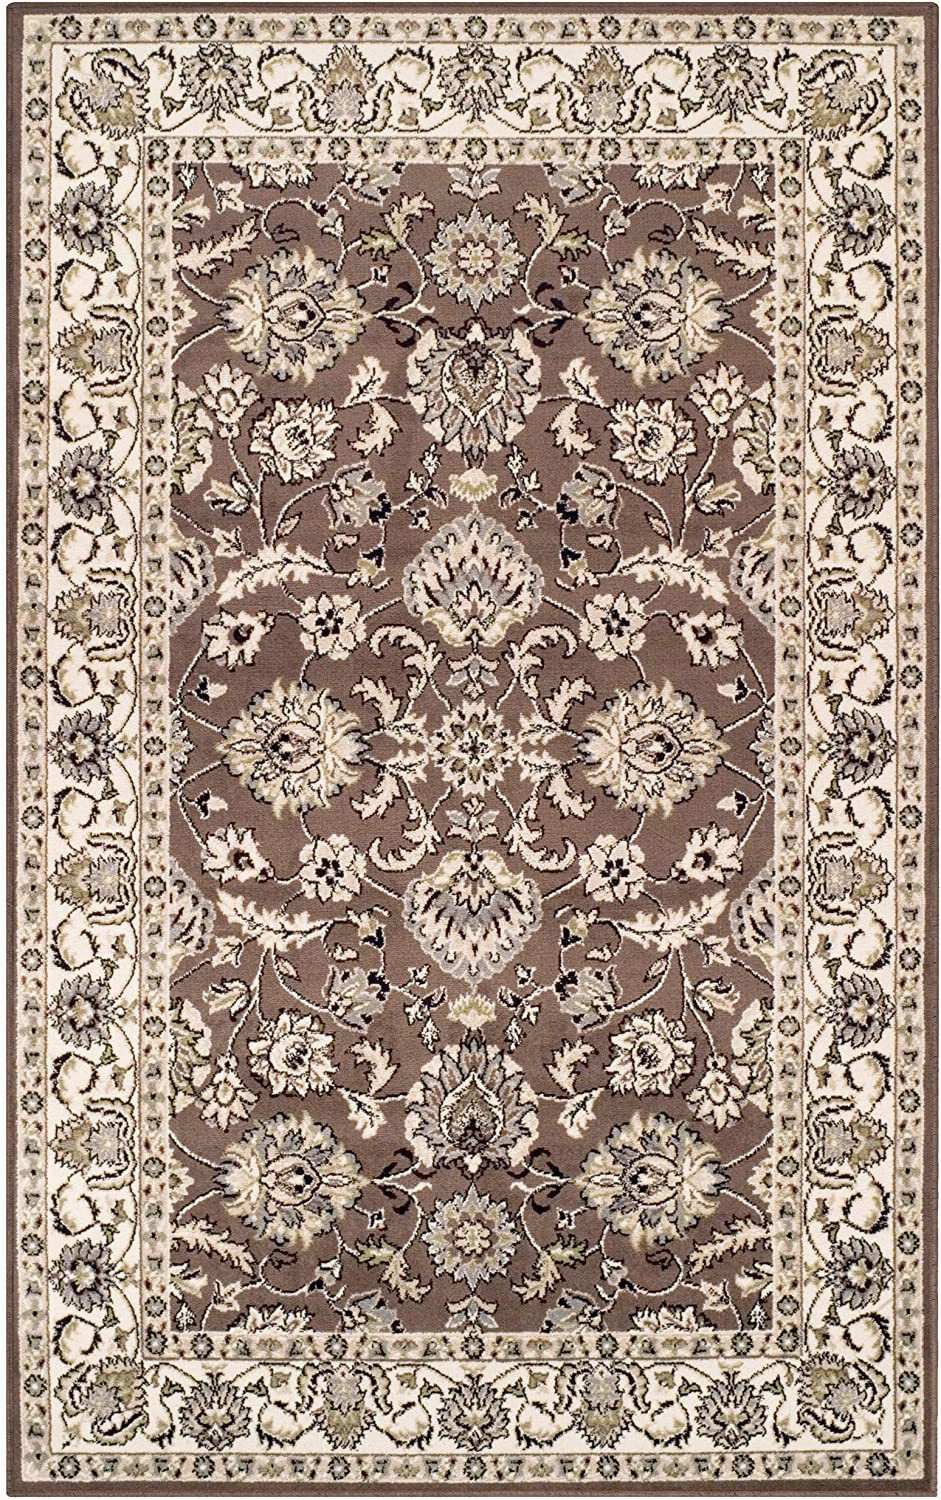 8 by 10 area Rugs On Amazon Superior Lille 8 X 10 area Rug Contemporary Living Room & Bedroom area Rug Anti Static and Water Repellent for Residential or Mercial Use